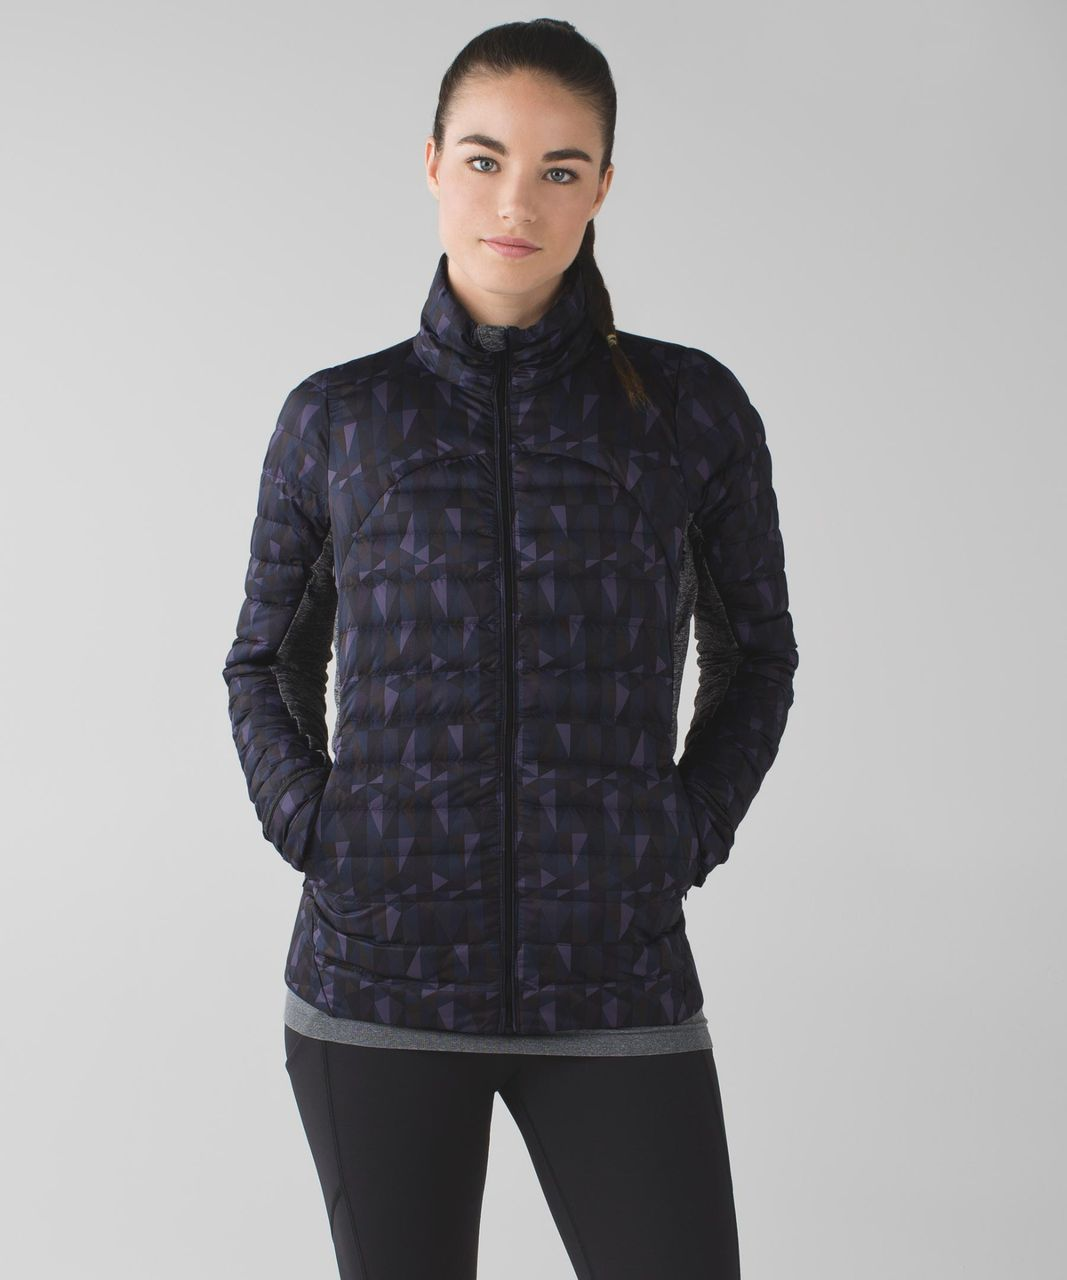 Lululemon Fluff Off Jacket - Stained Glass Love Nightfall Black